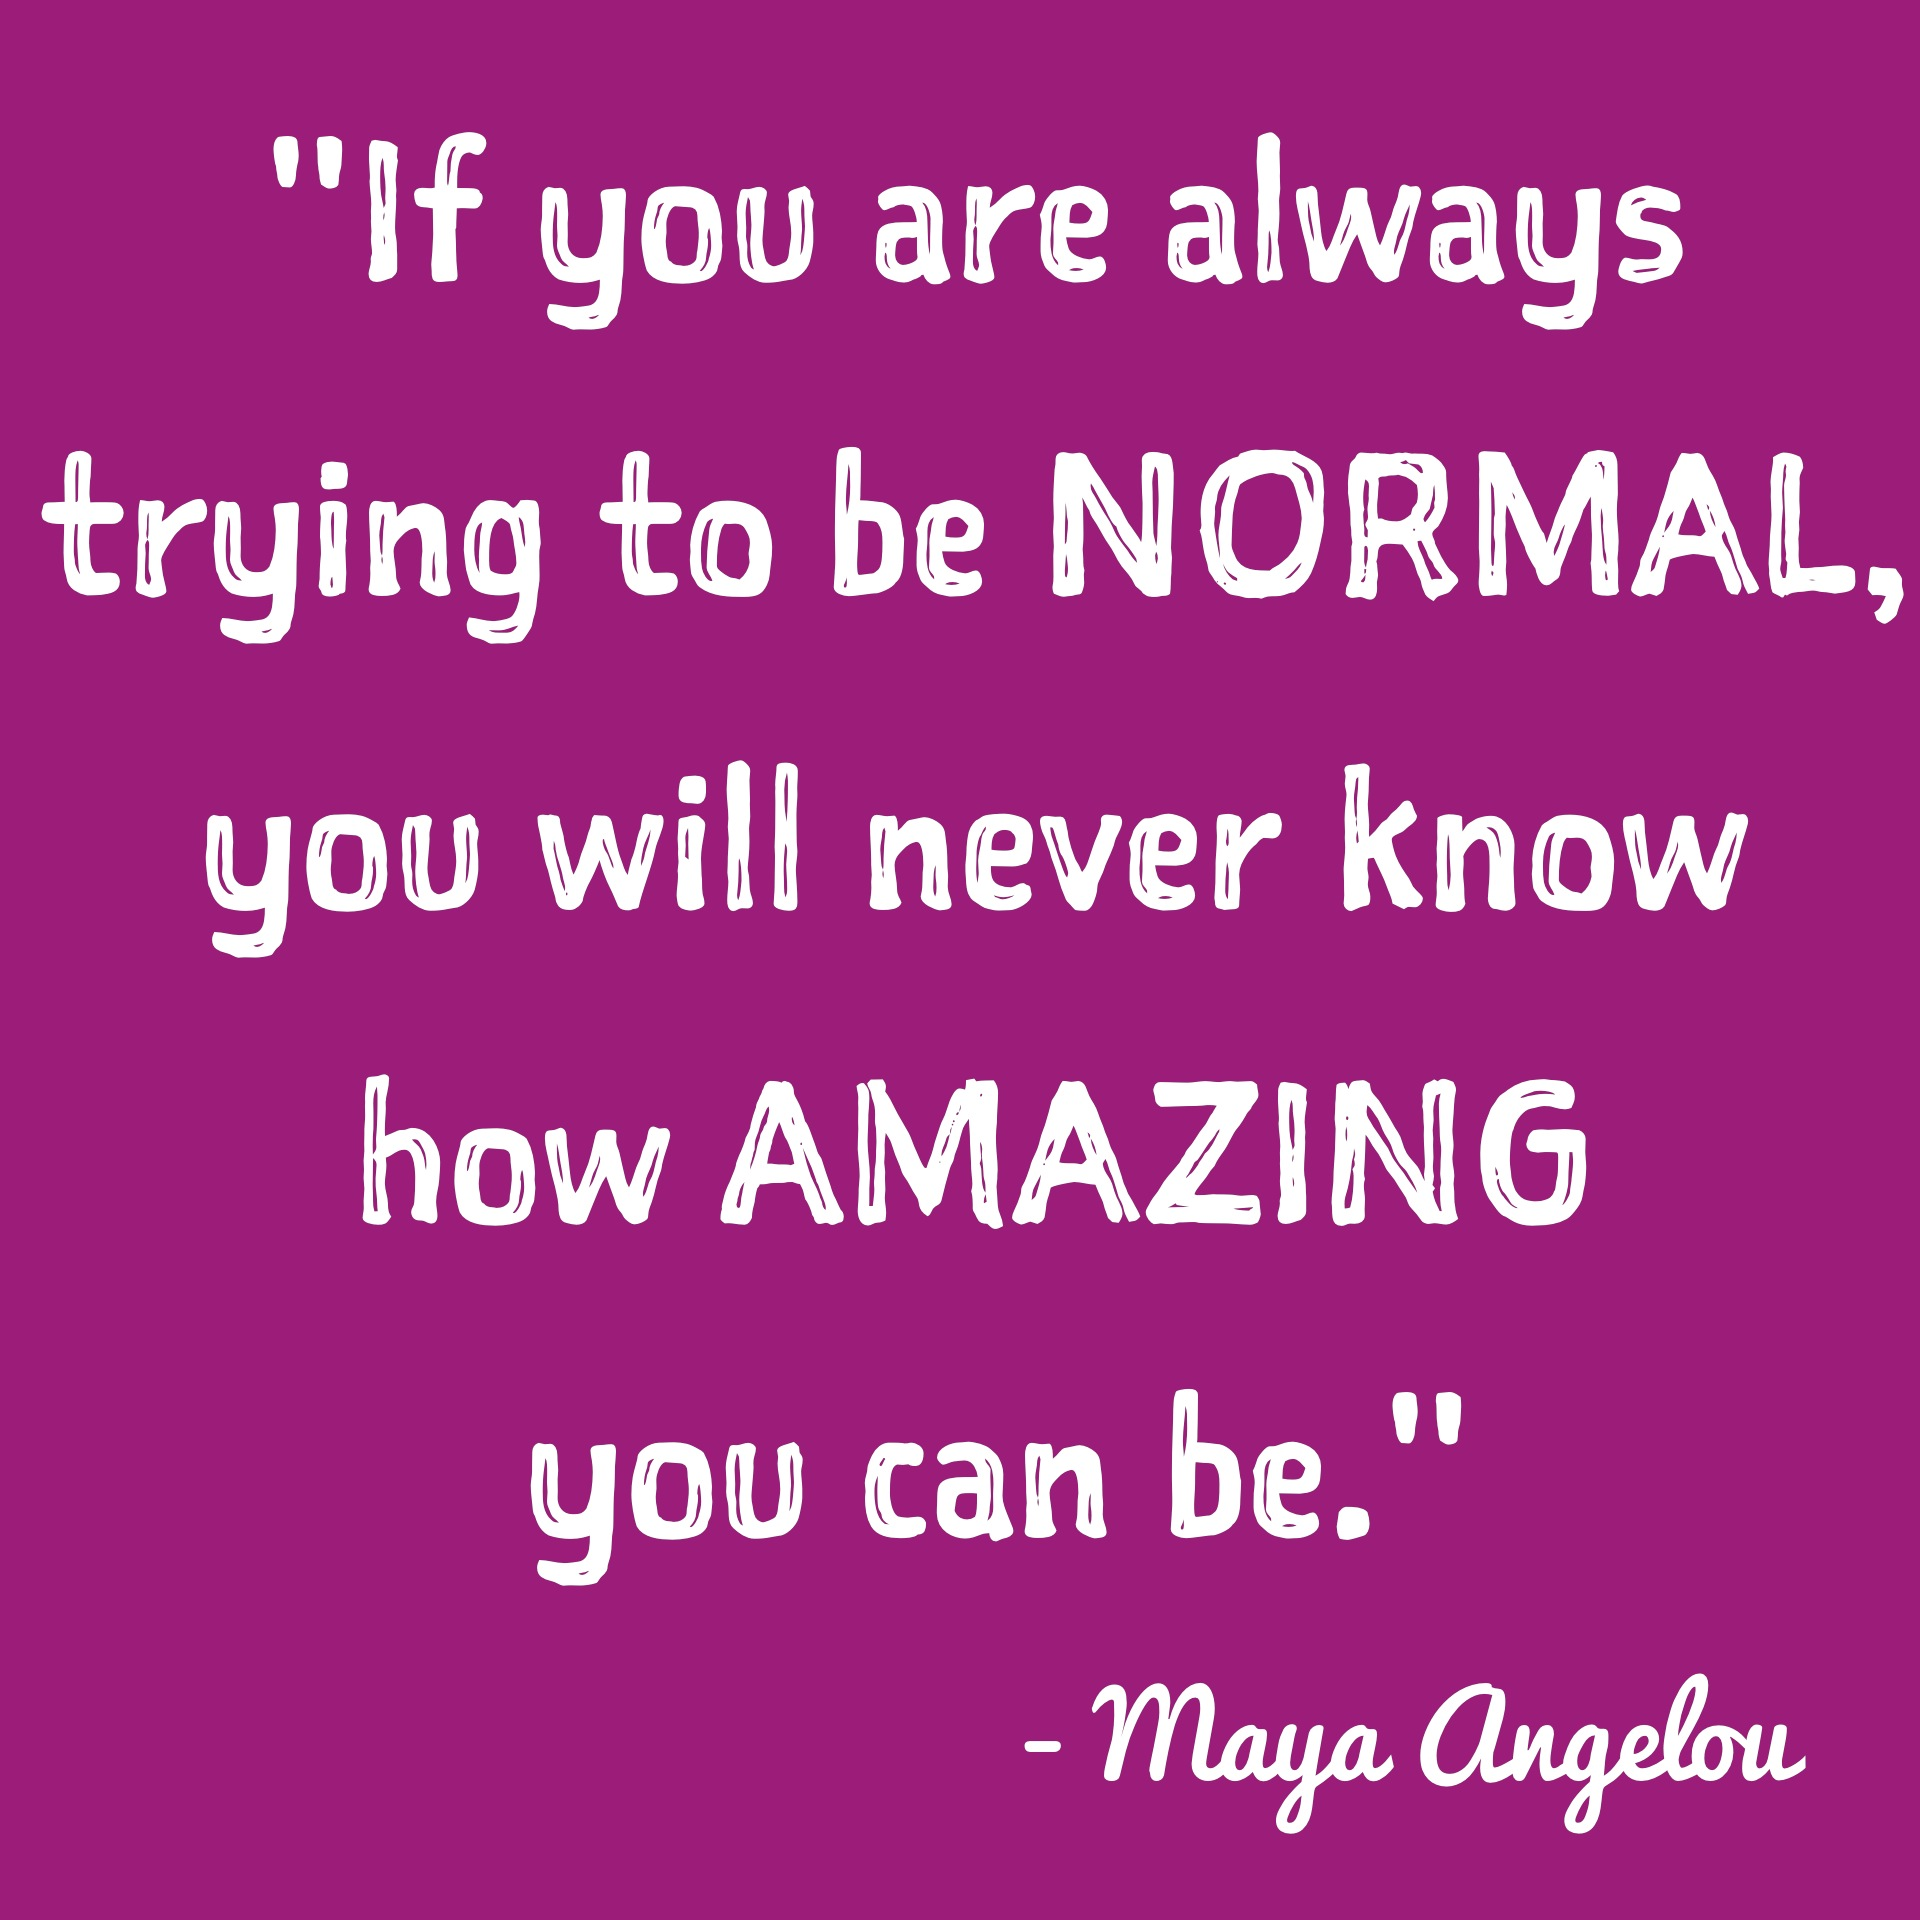 Motivational Sayings Top 13 Inspirational Quotes Of 2014  11 Normal Is Not Amazing